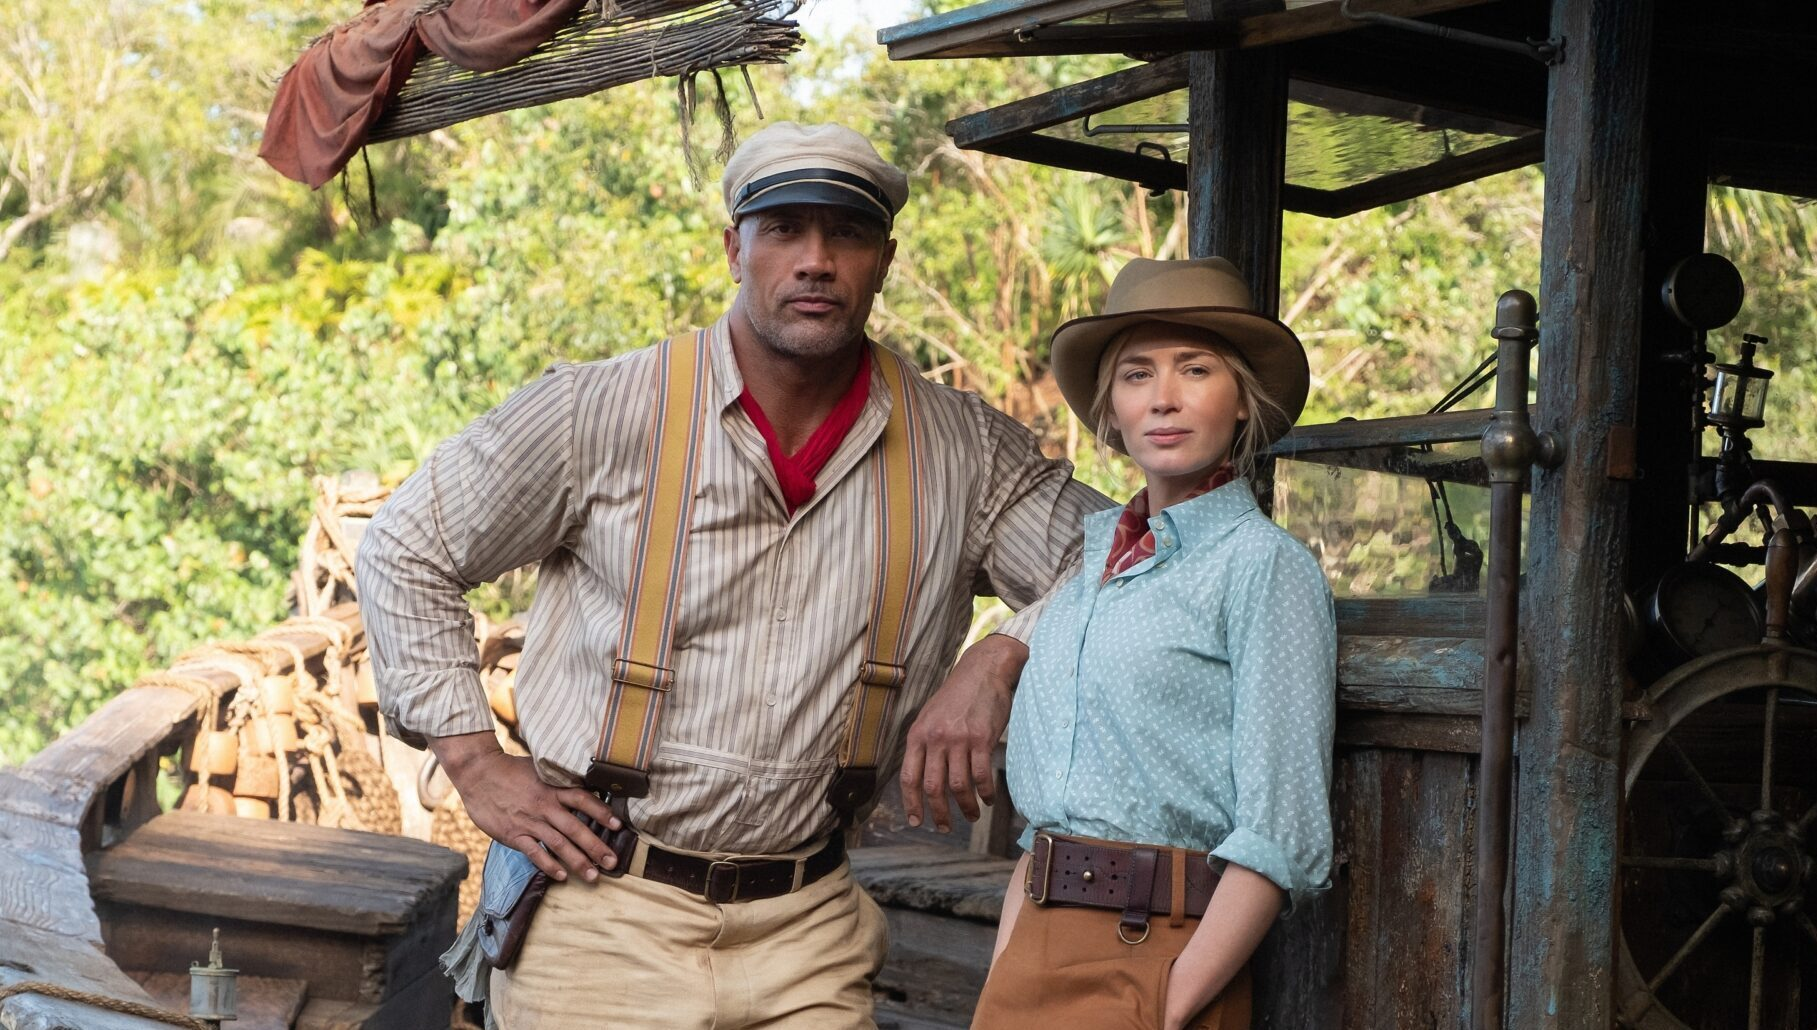 The Rock and Emily Blunt Make a Dynamic Duo in 'Jungle Cruise'